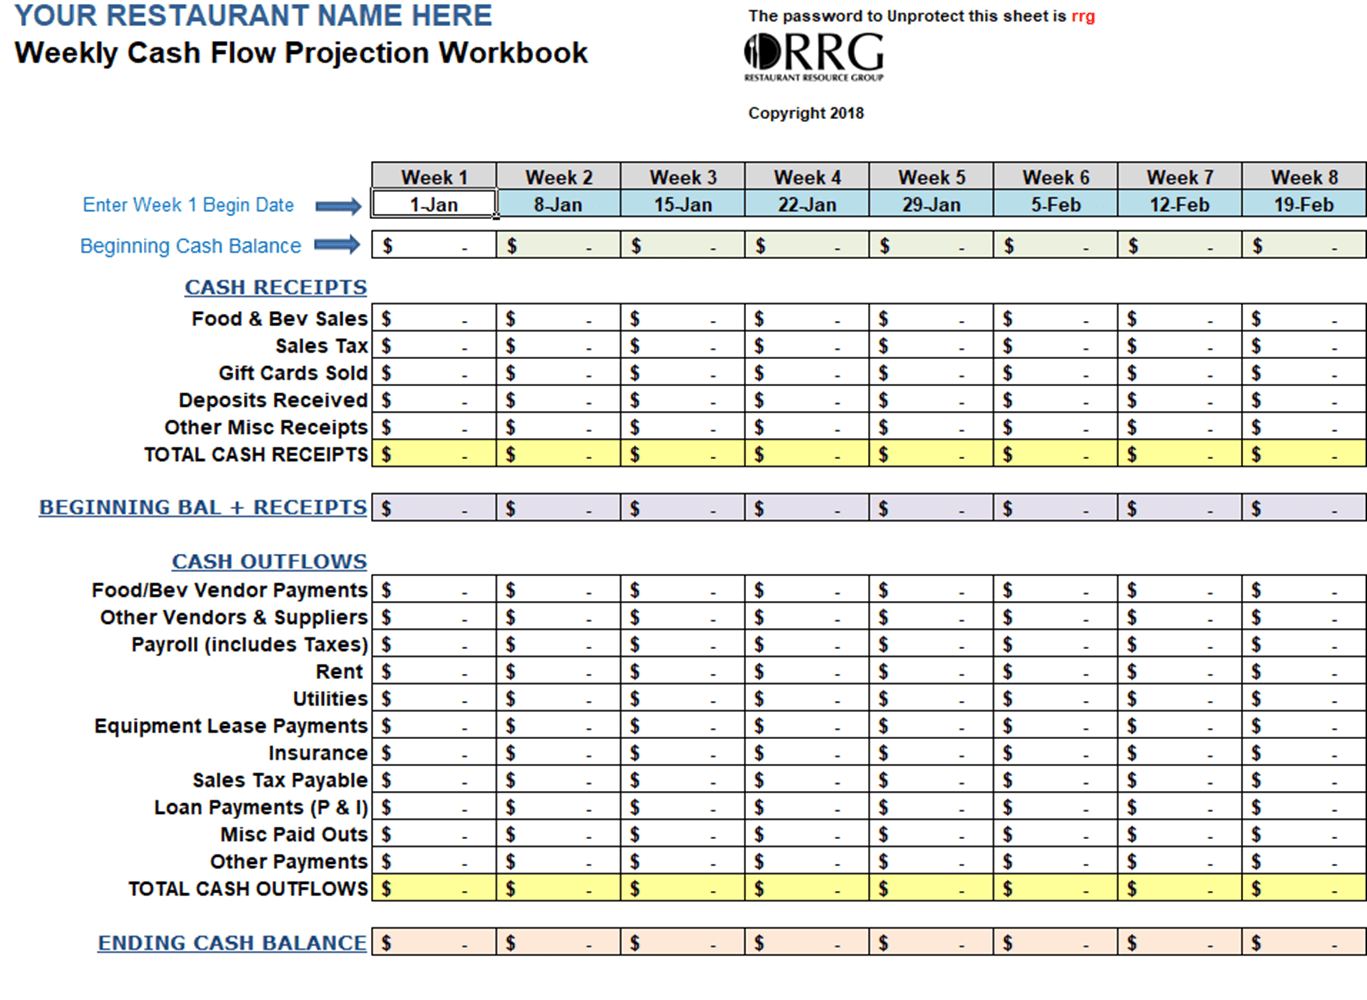 Restaurant Weekly Cash Flow Workbook Spreadsheet